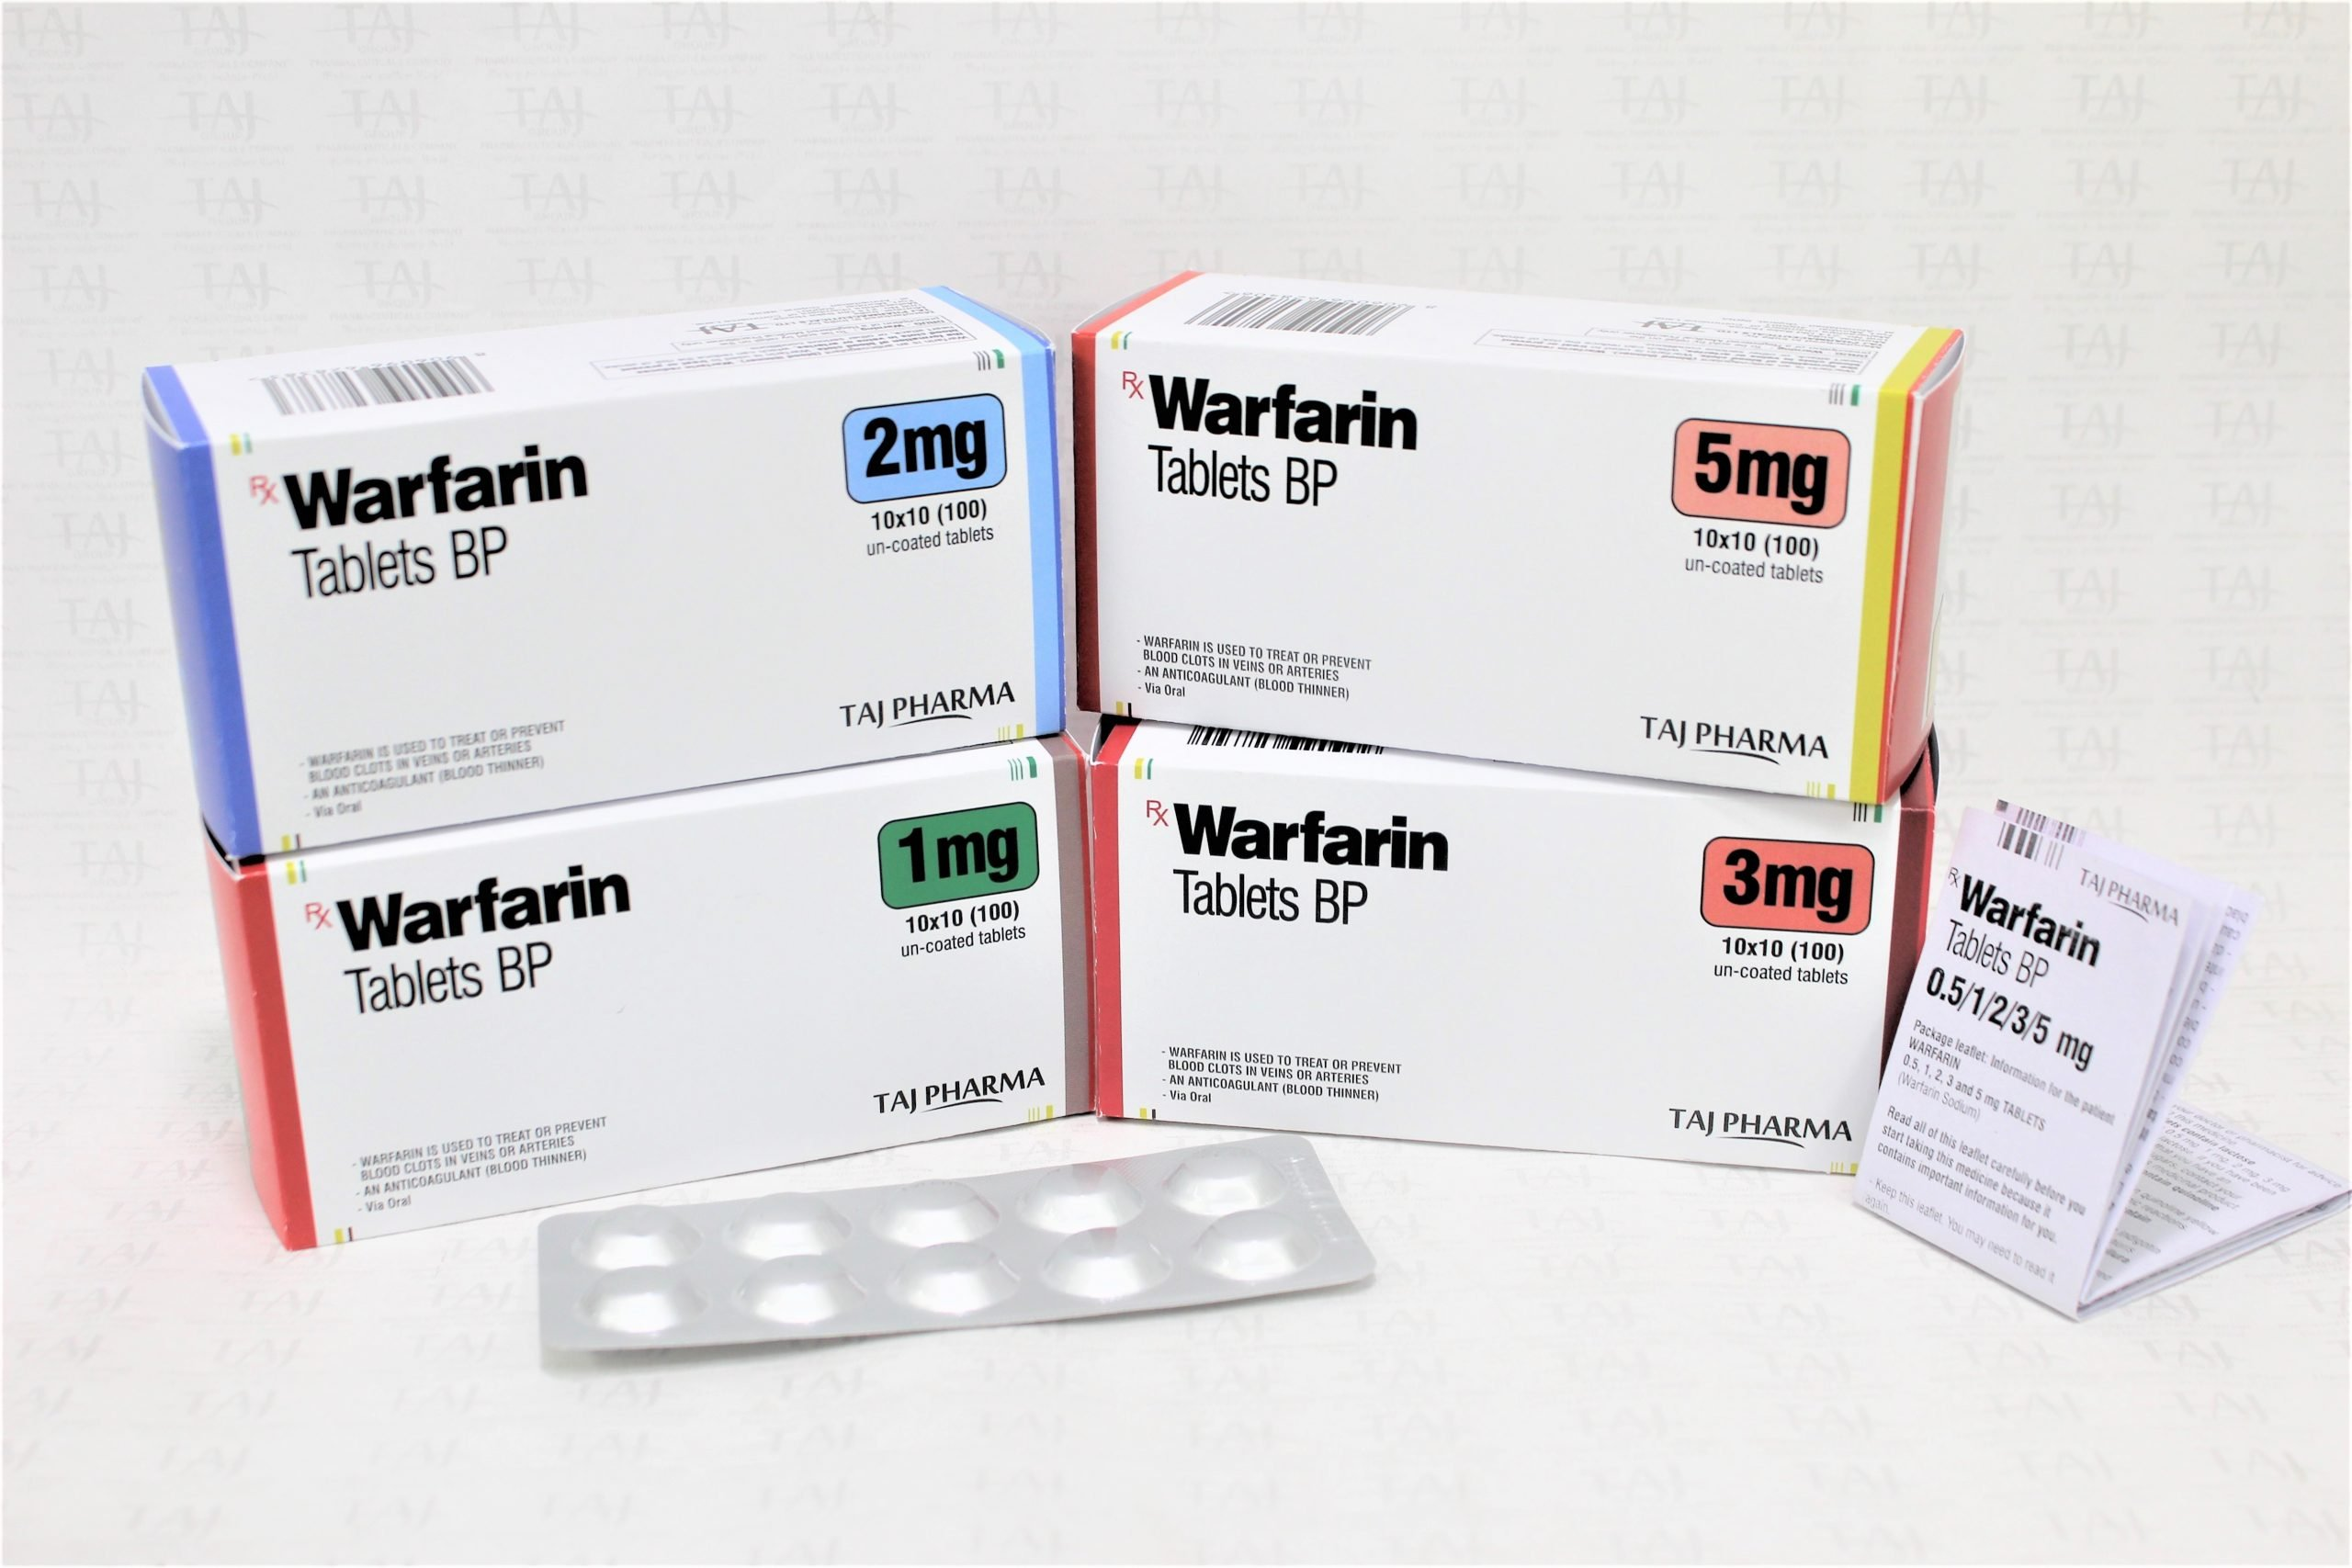 Taj Pharma India team has an excellent expertise in manufacturing and export of Warfarin sodium tablets.